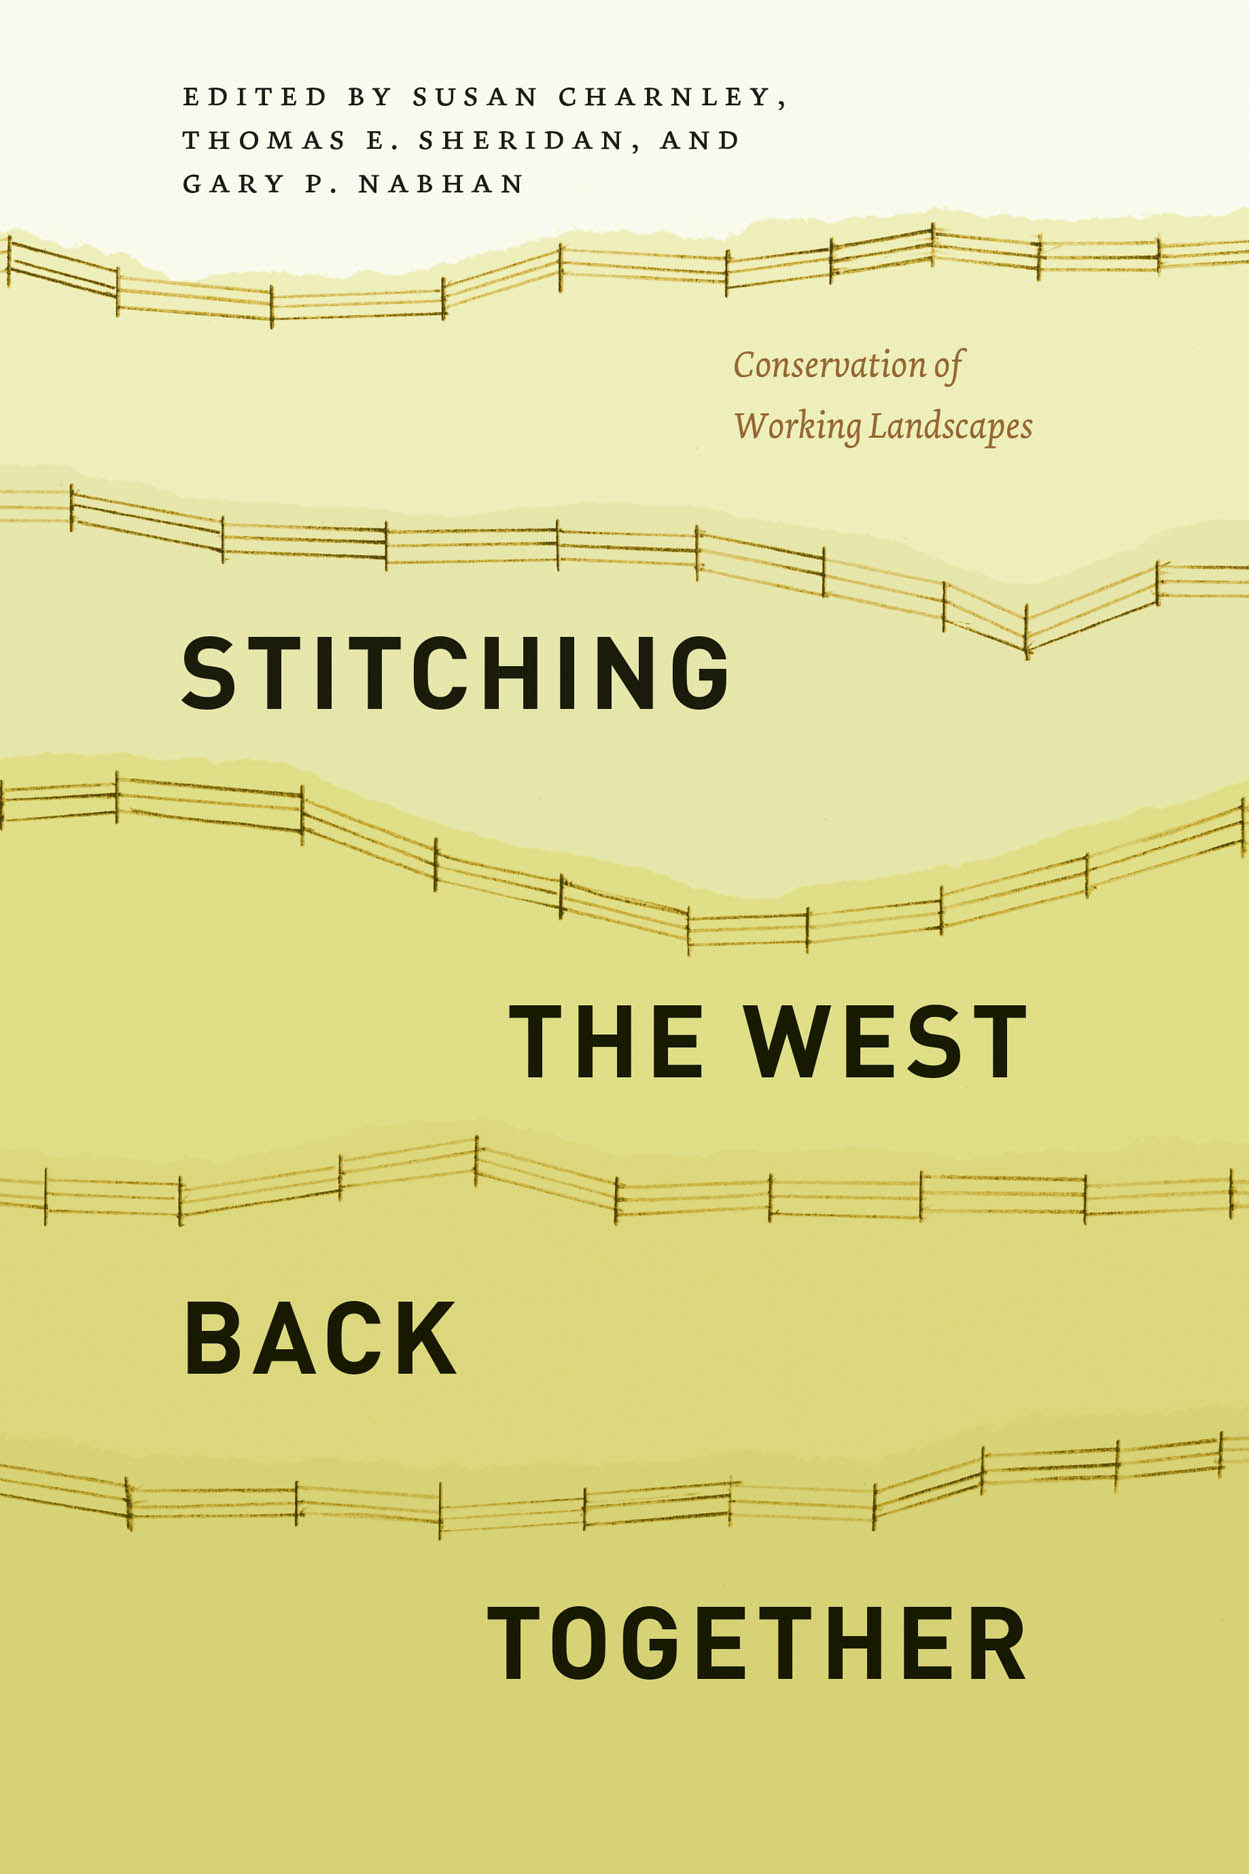 Stitching the West Back Together: Conservation of Working Landscapes